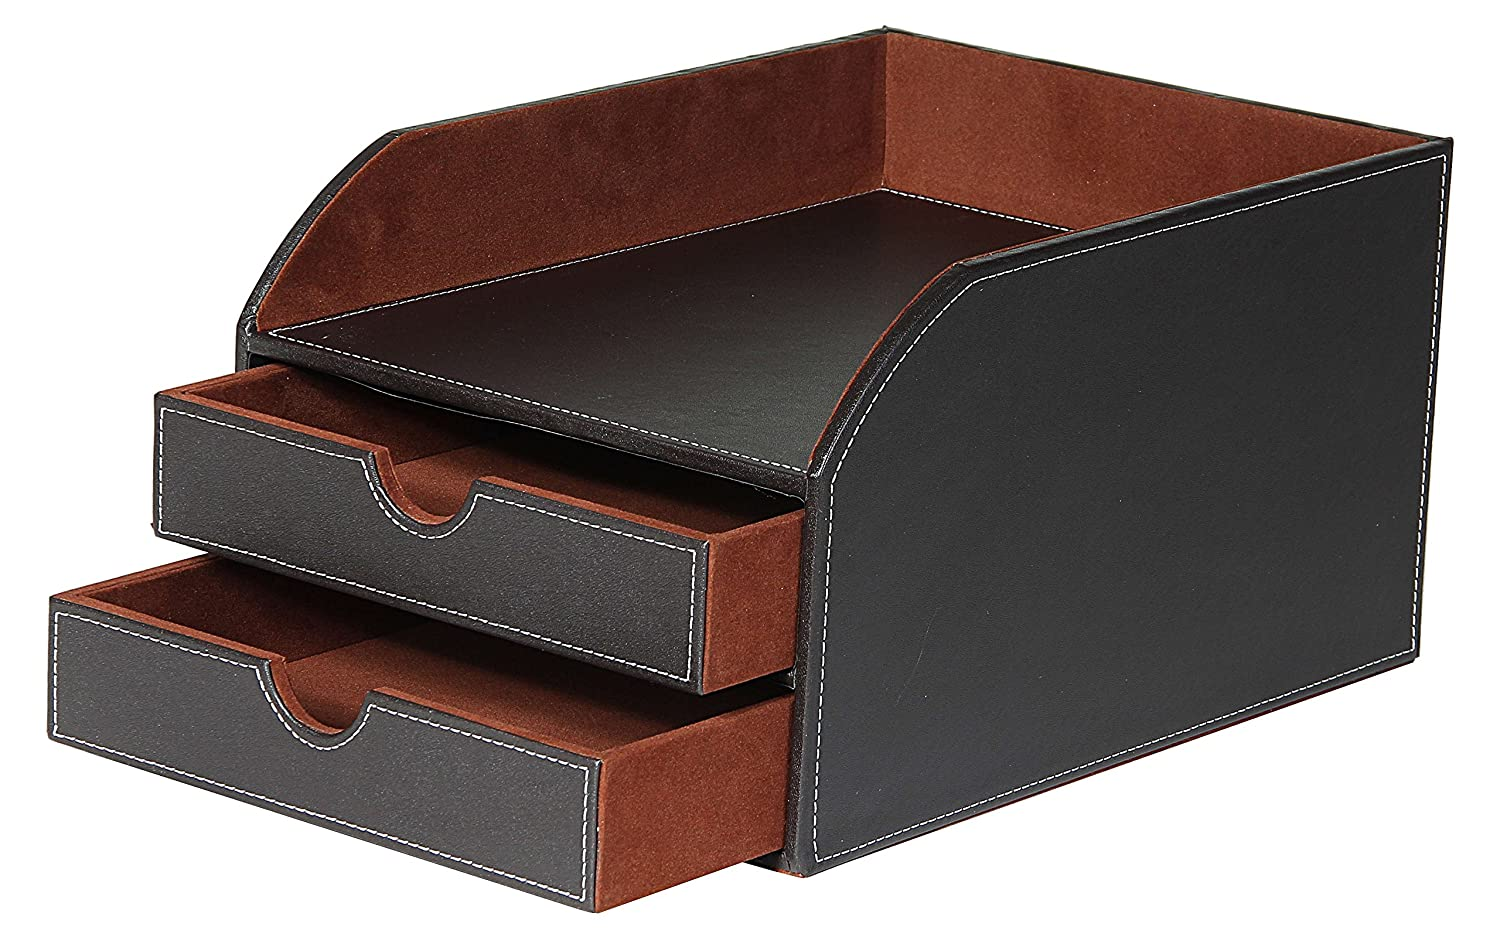 Good Osco Faux Leather 2 Tier Sorter With Letter Tray   Brown: Amazon.co.uk:  Office Products